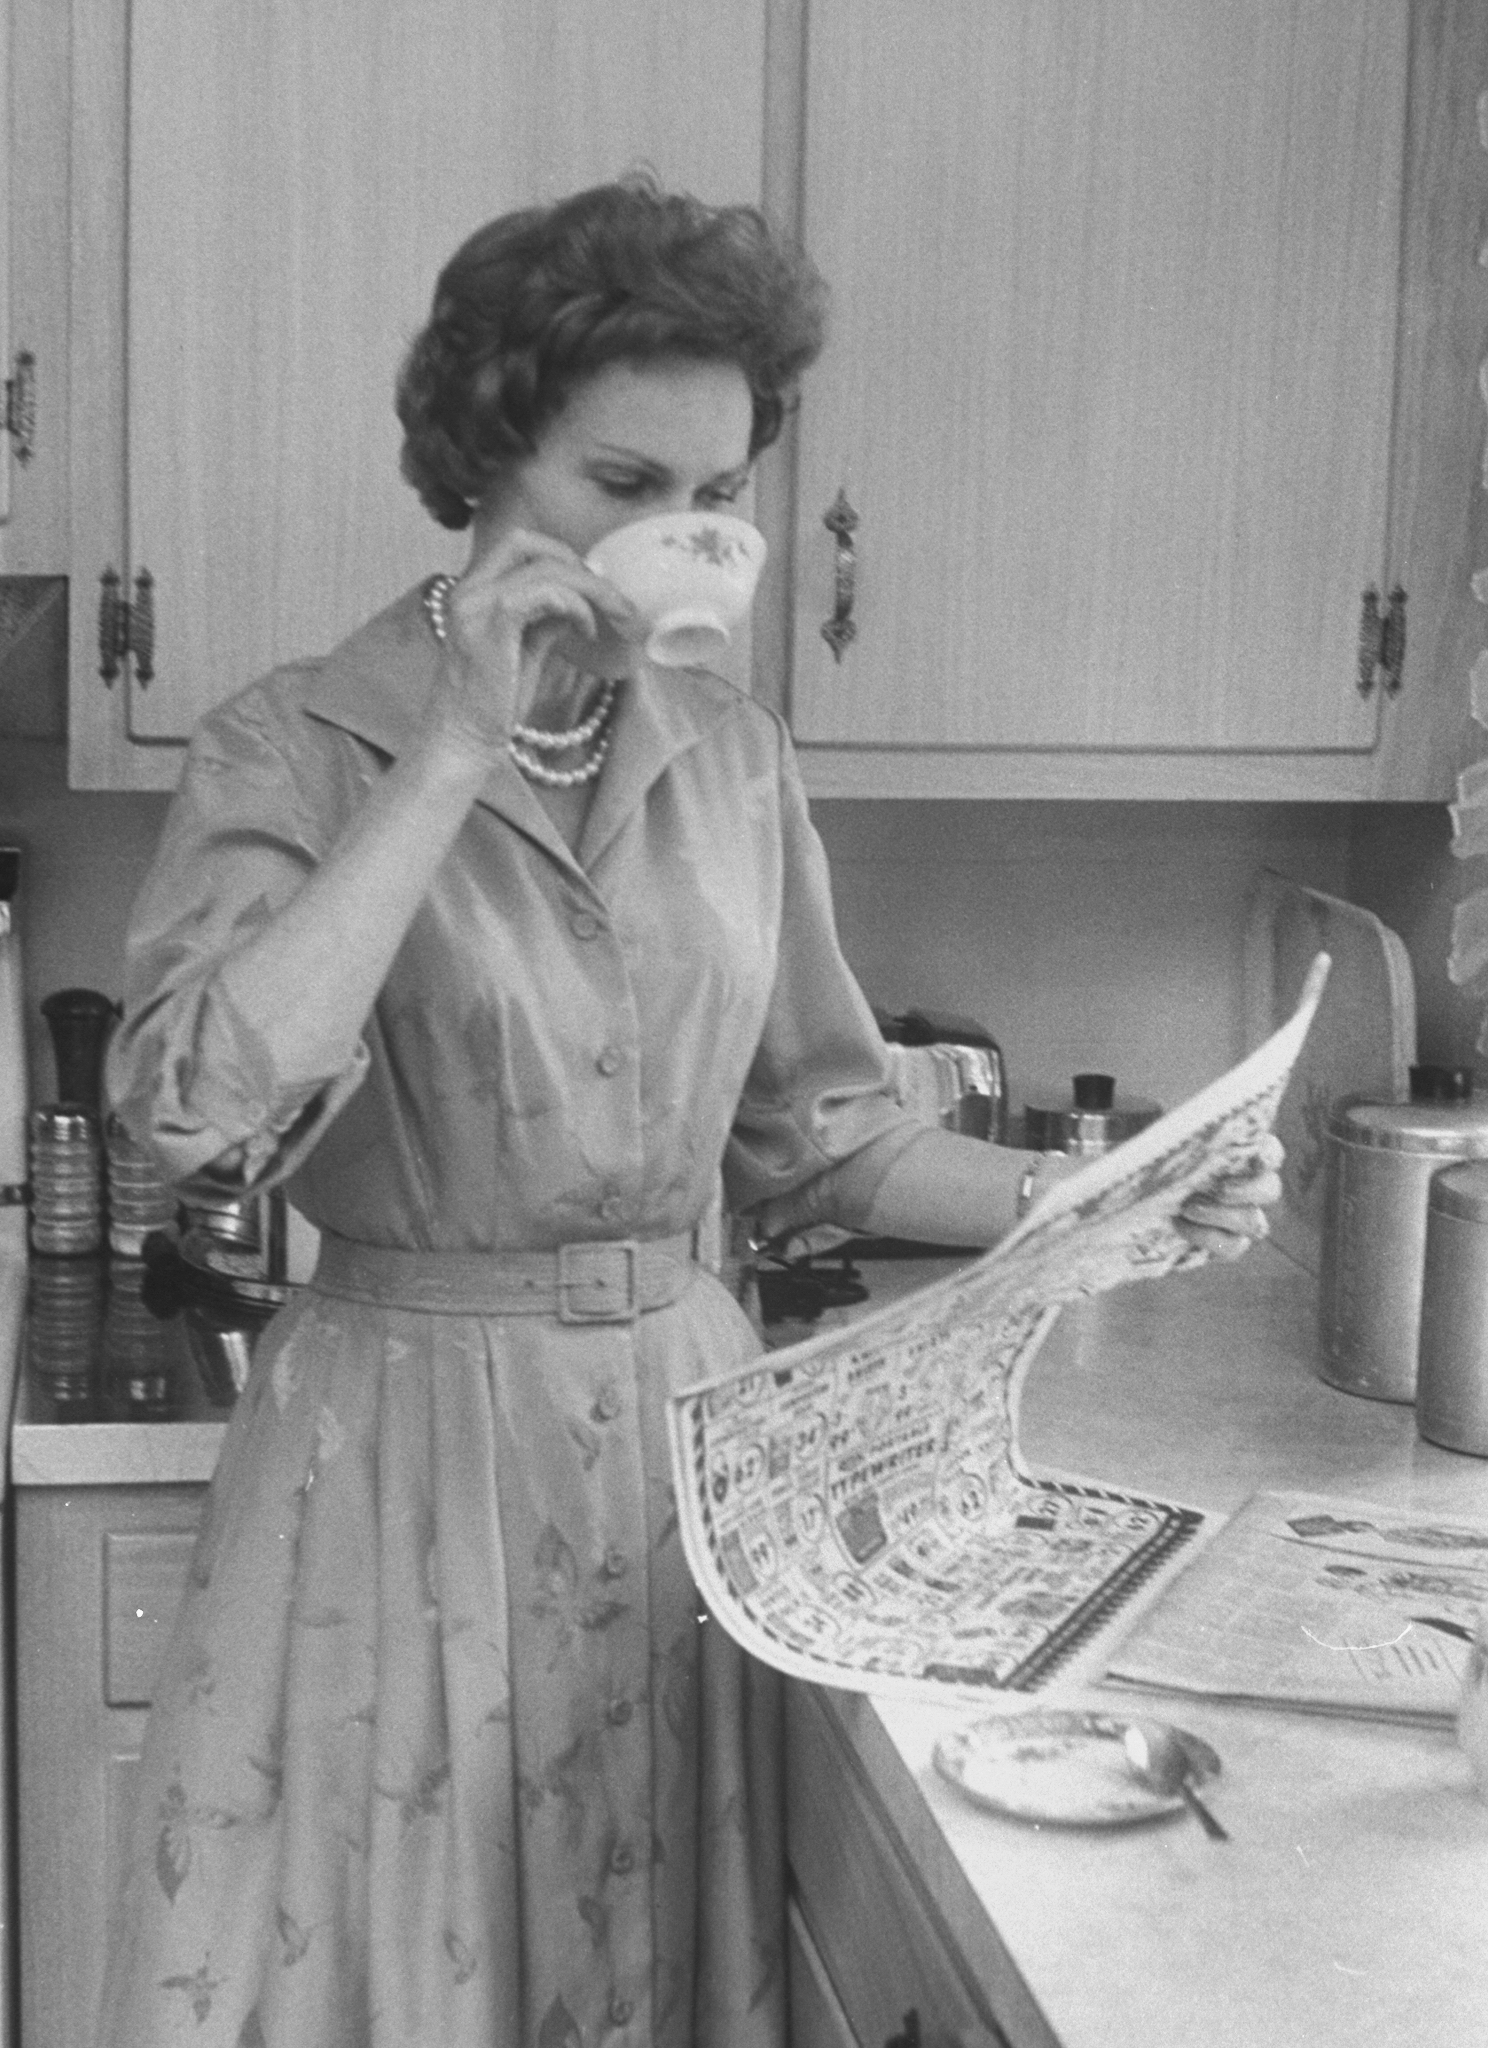 Mrs. Patricia Nixon at home reading the newspaper in Washington, 1960.